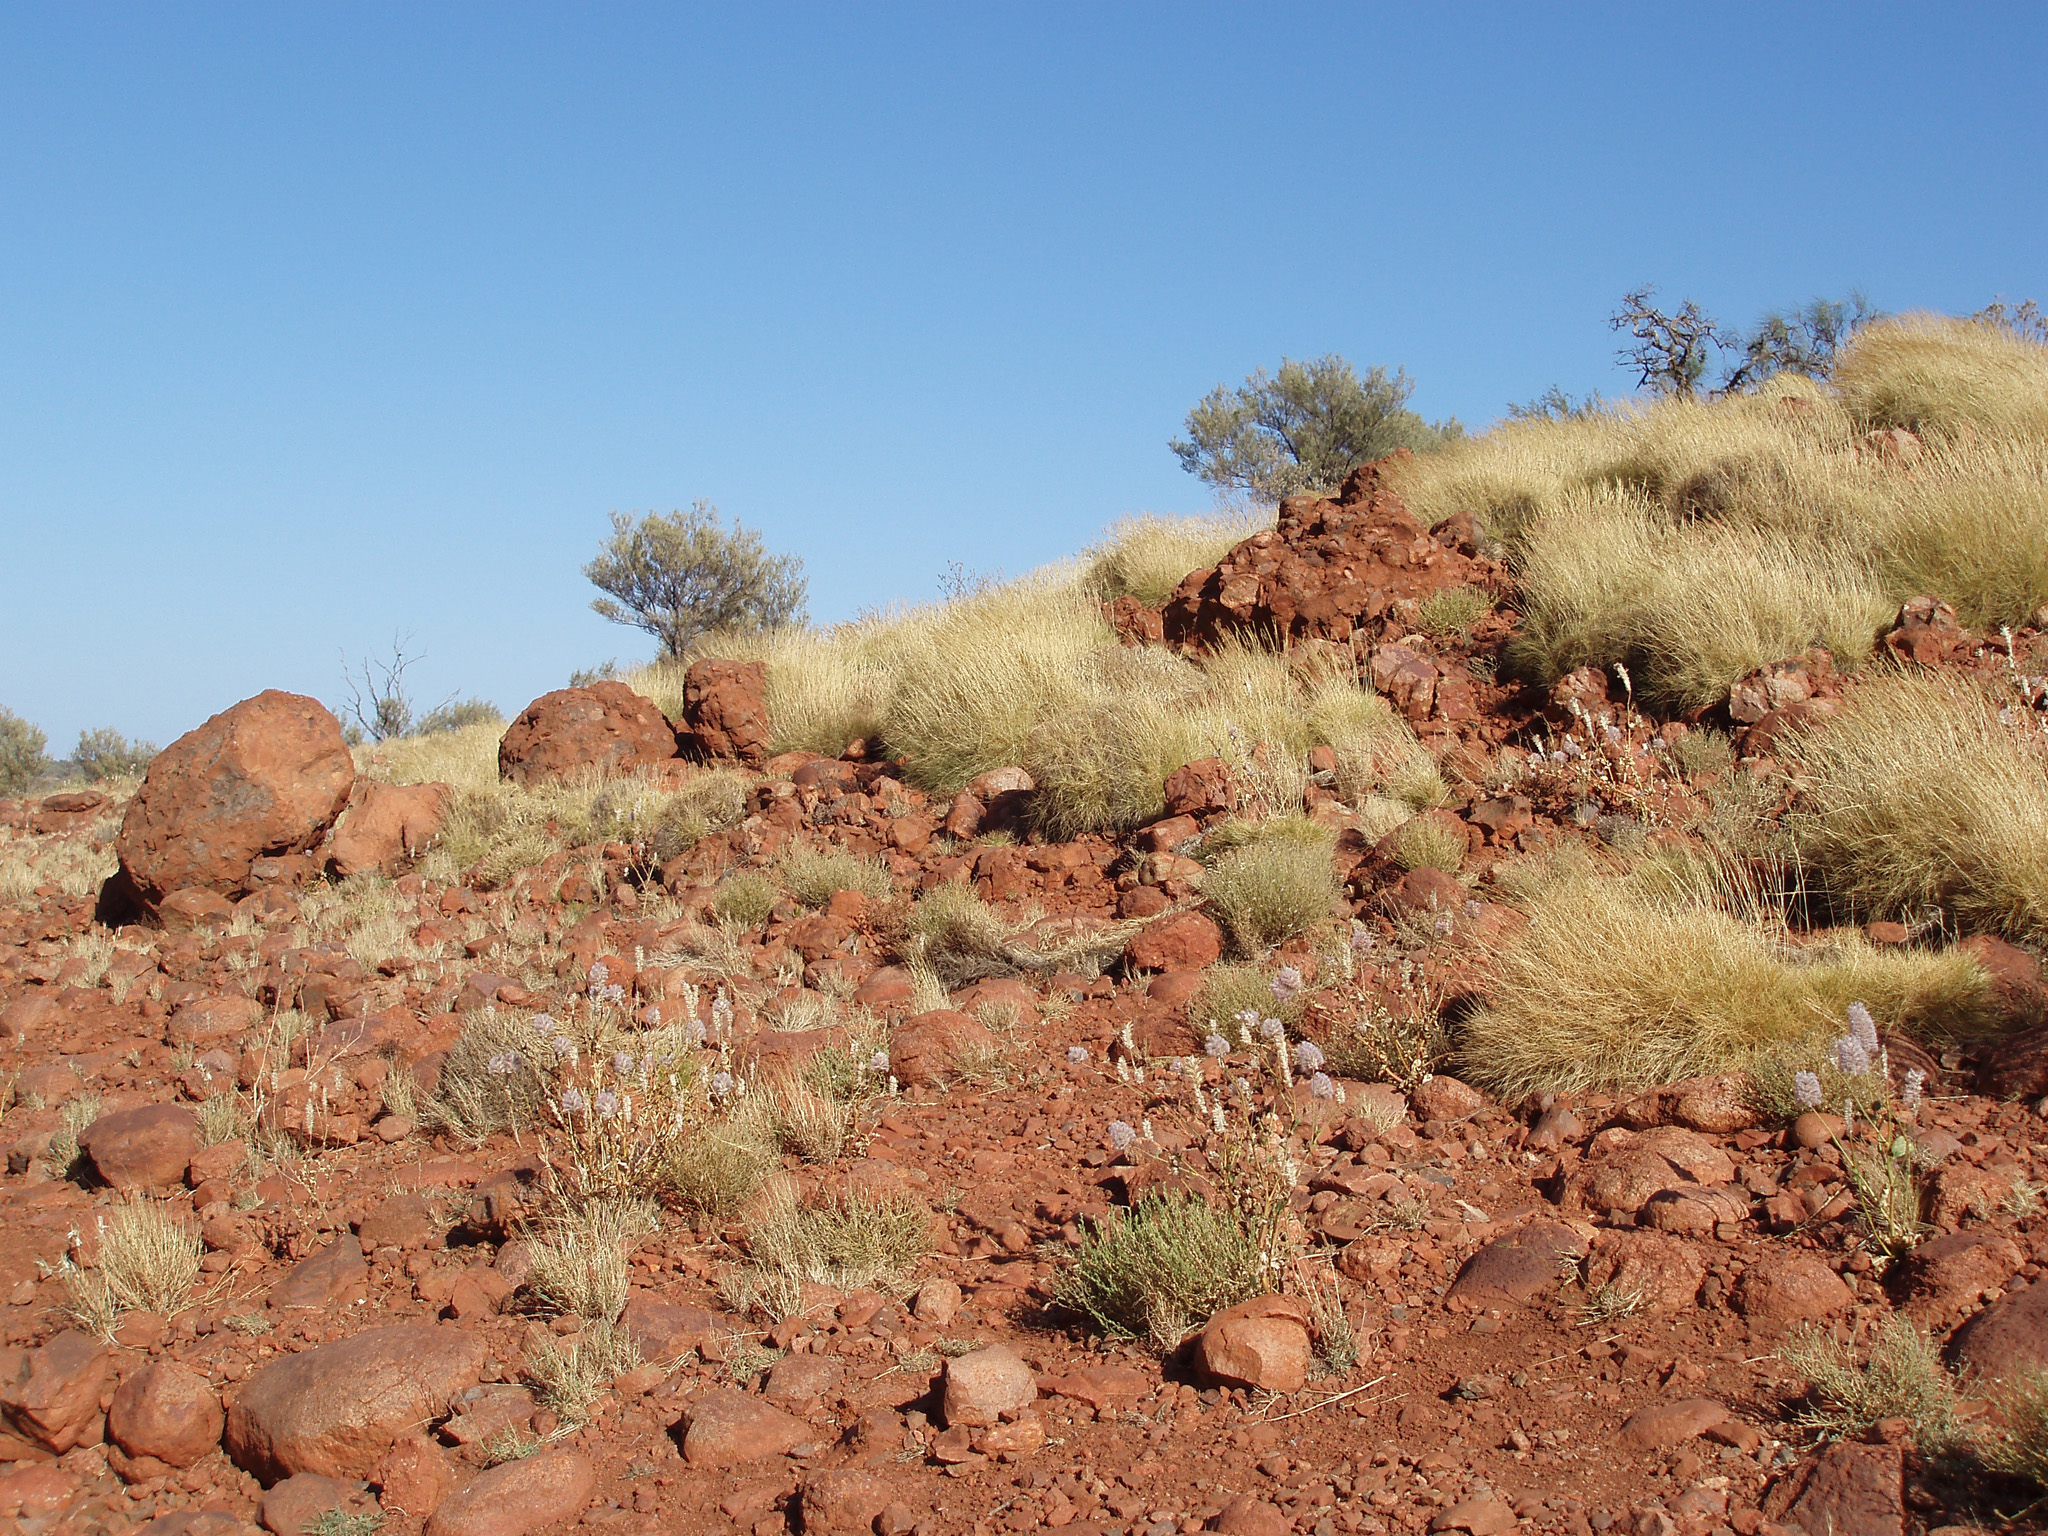 Small Grasses on Rocky Red Brown Land in Australia on Light Blue Sky Background.